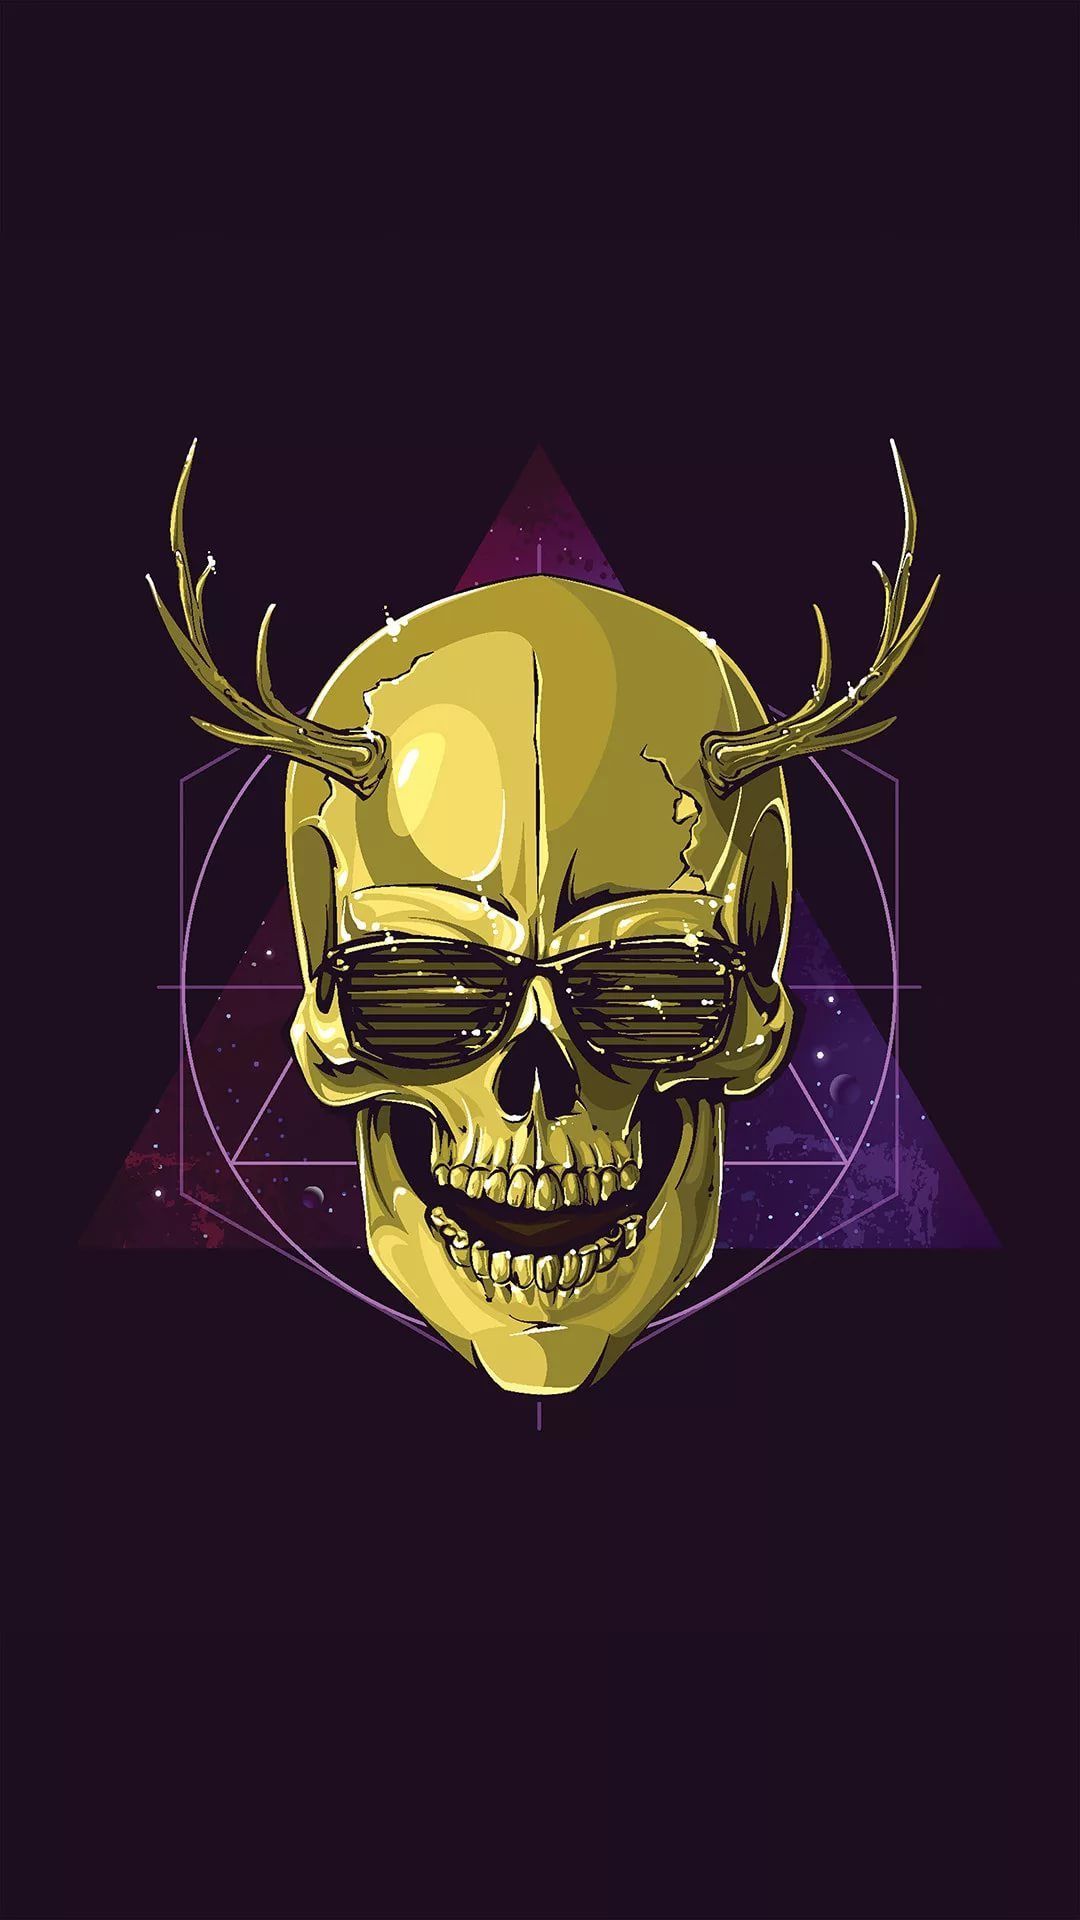 Cool Skull hd wallpaper for Android